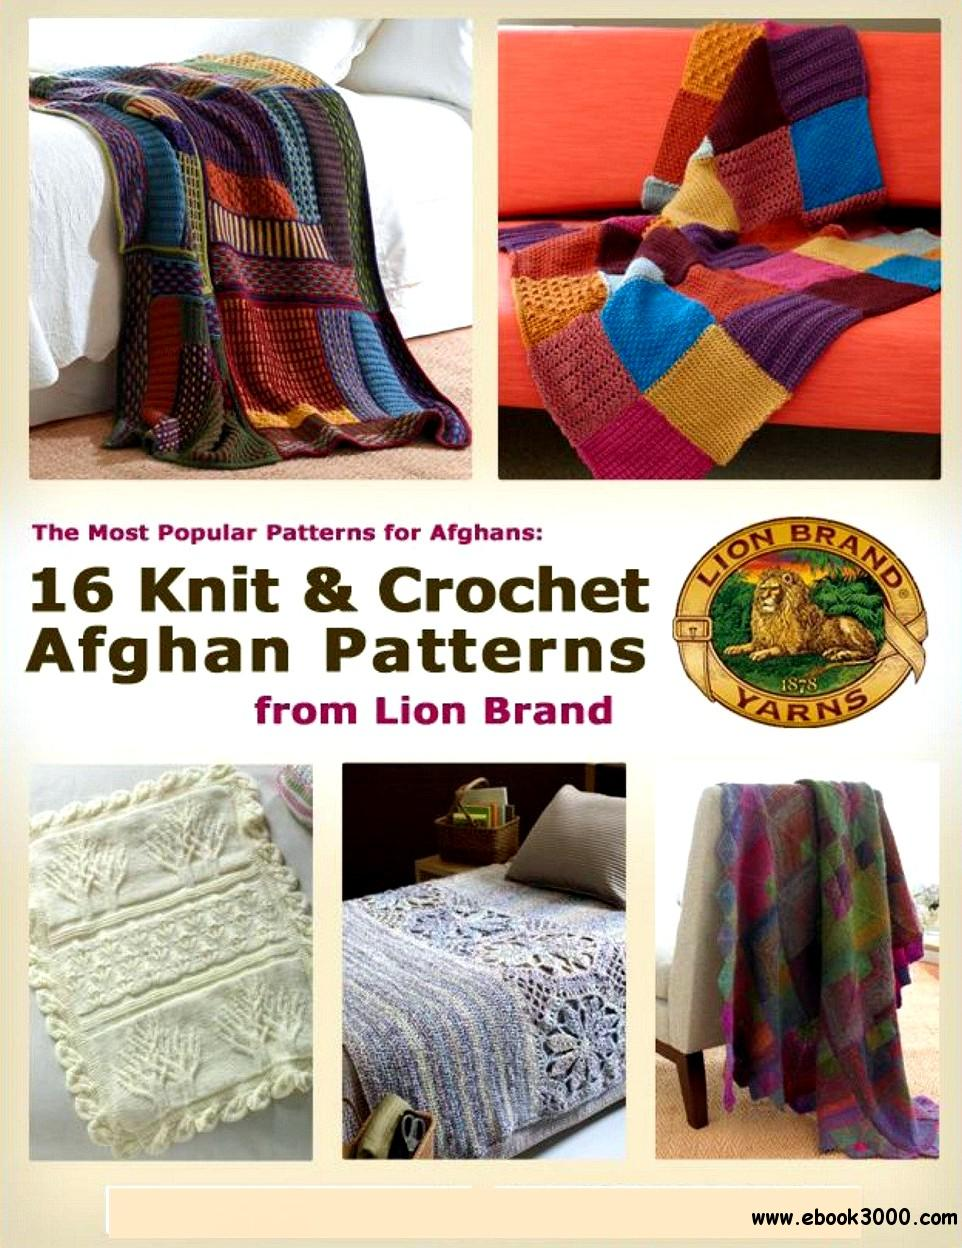 The Most Popular Patterns for Afghans: 16 Knit & Crochet Afghan Patterns from Lion Brand free download